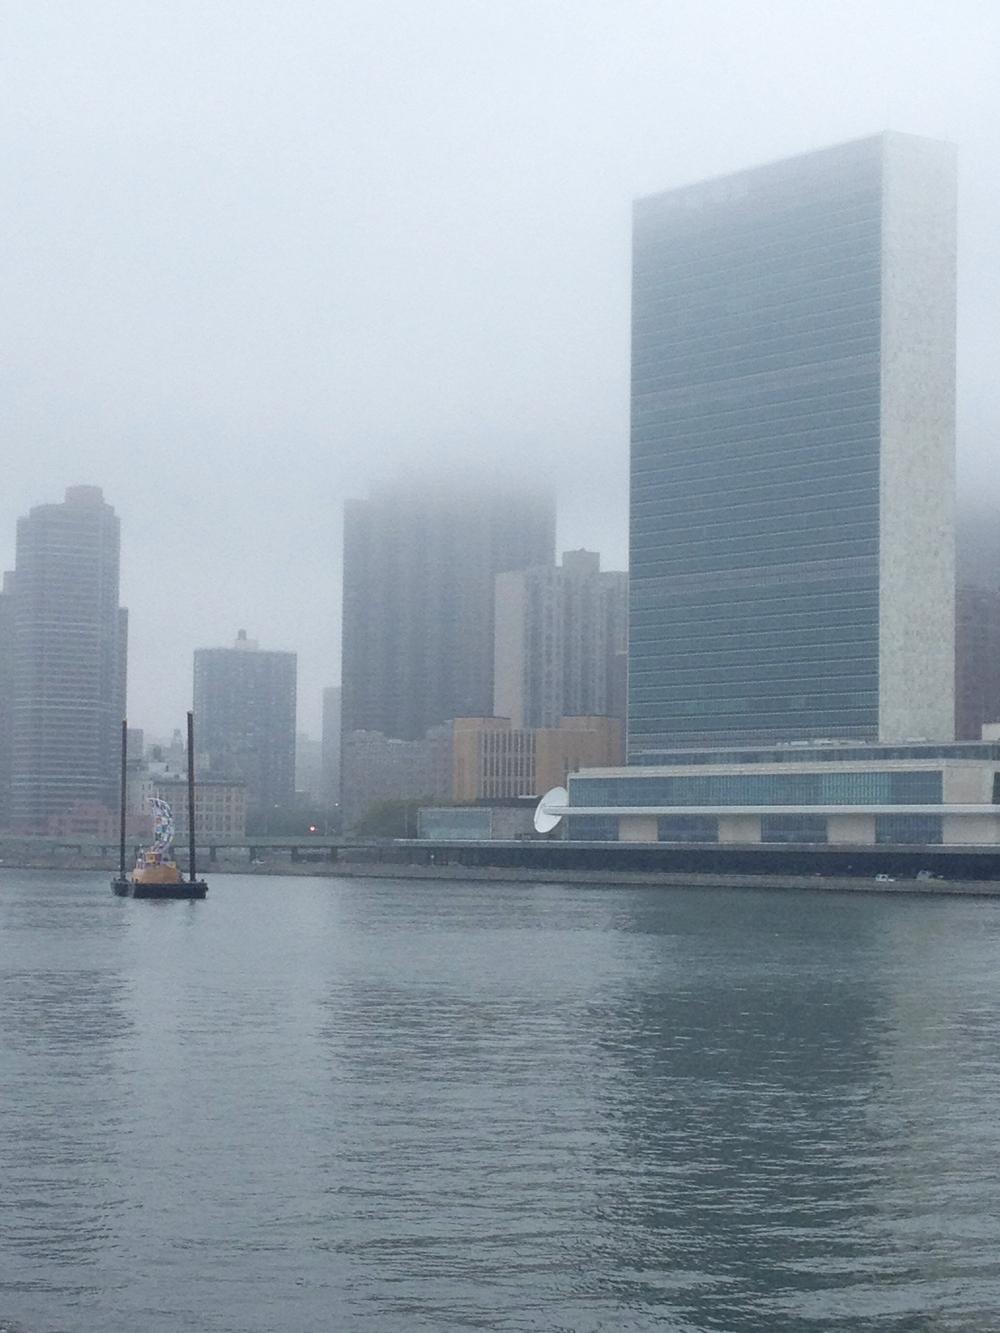 The Ship of Tolerance barged in the East River beneath the United Nations.